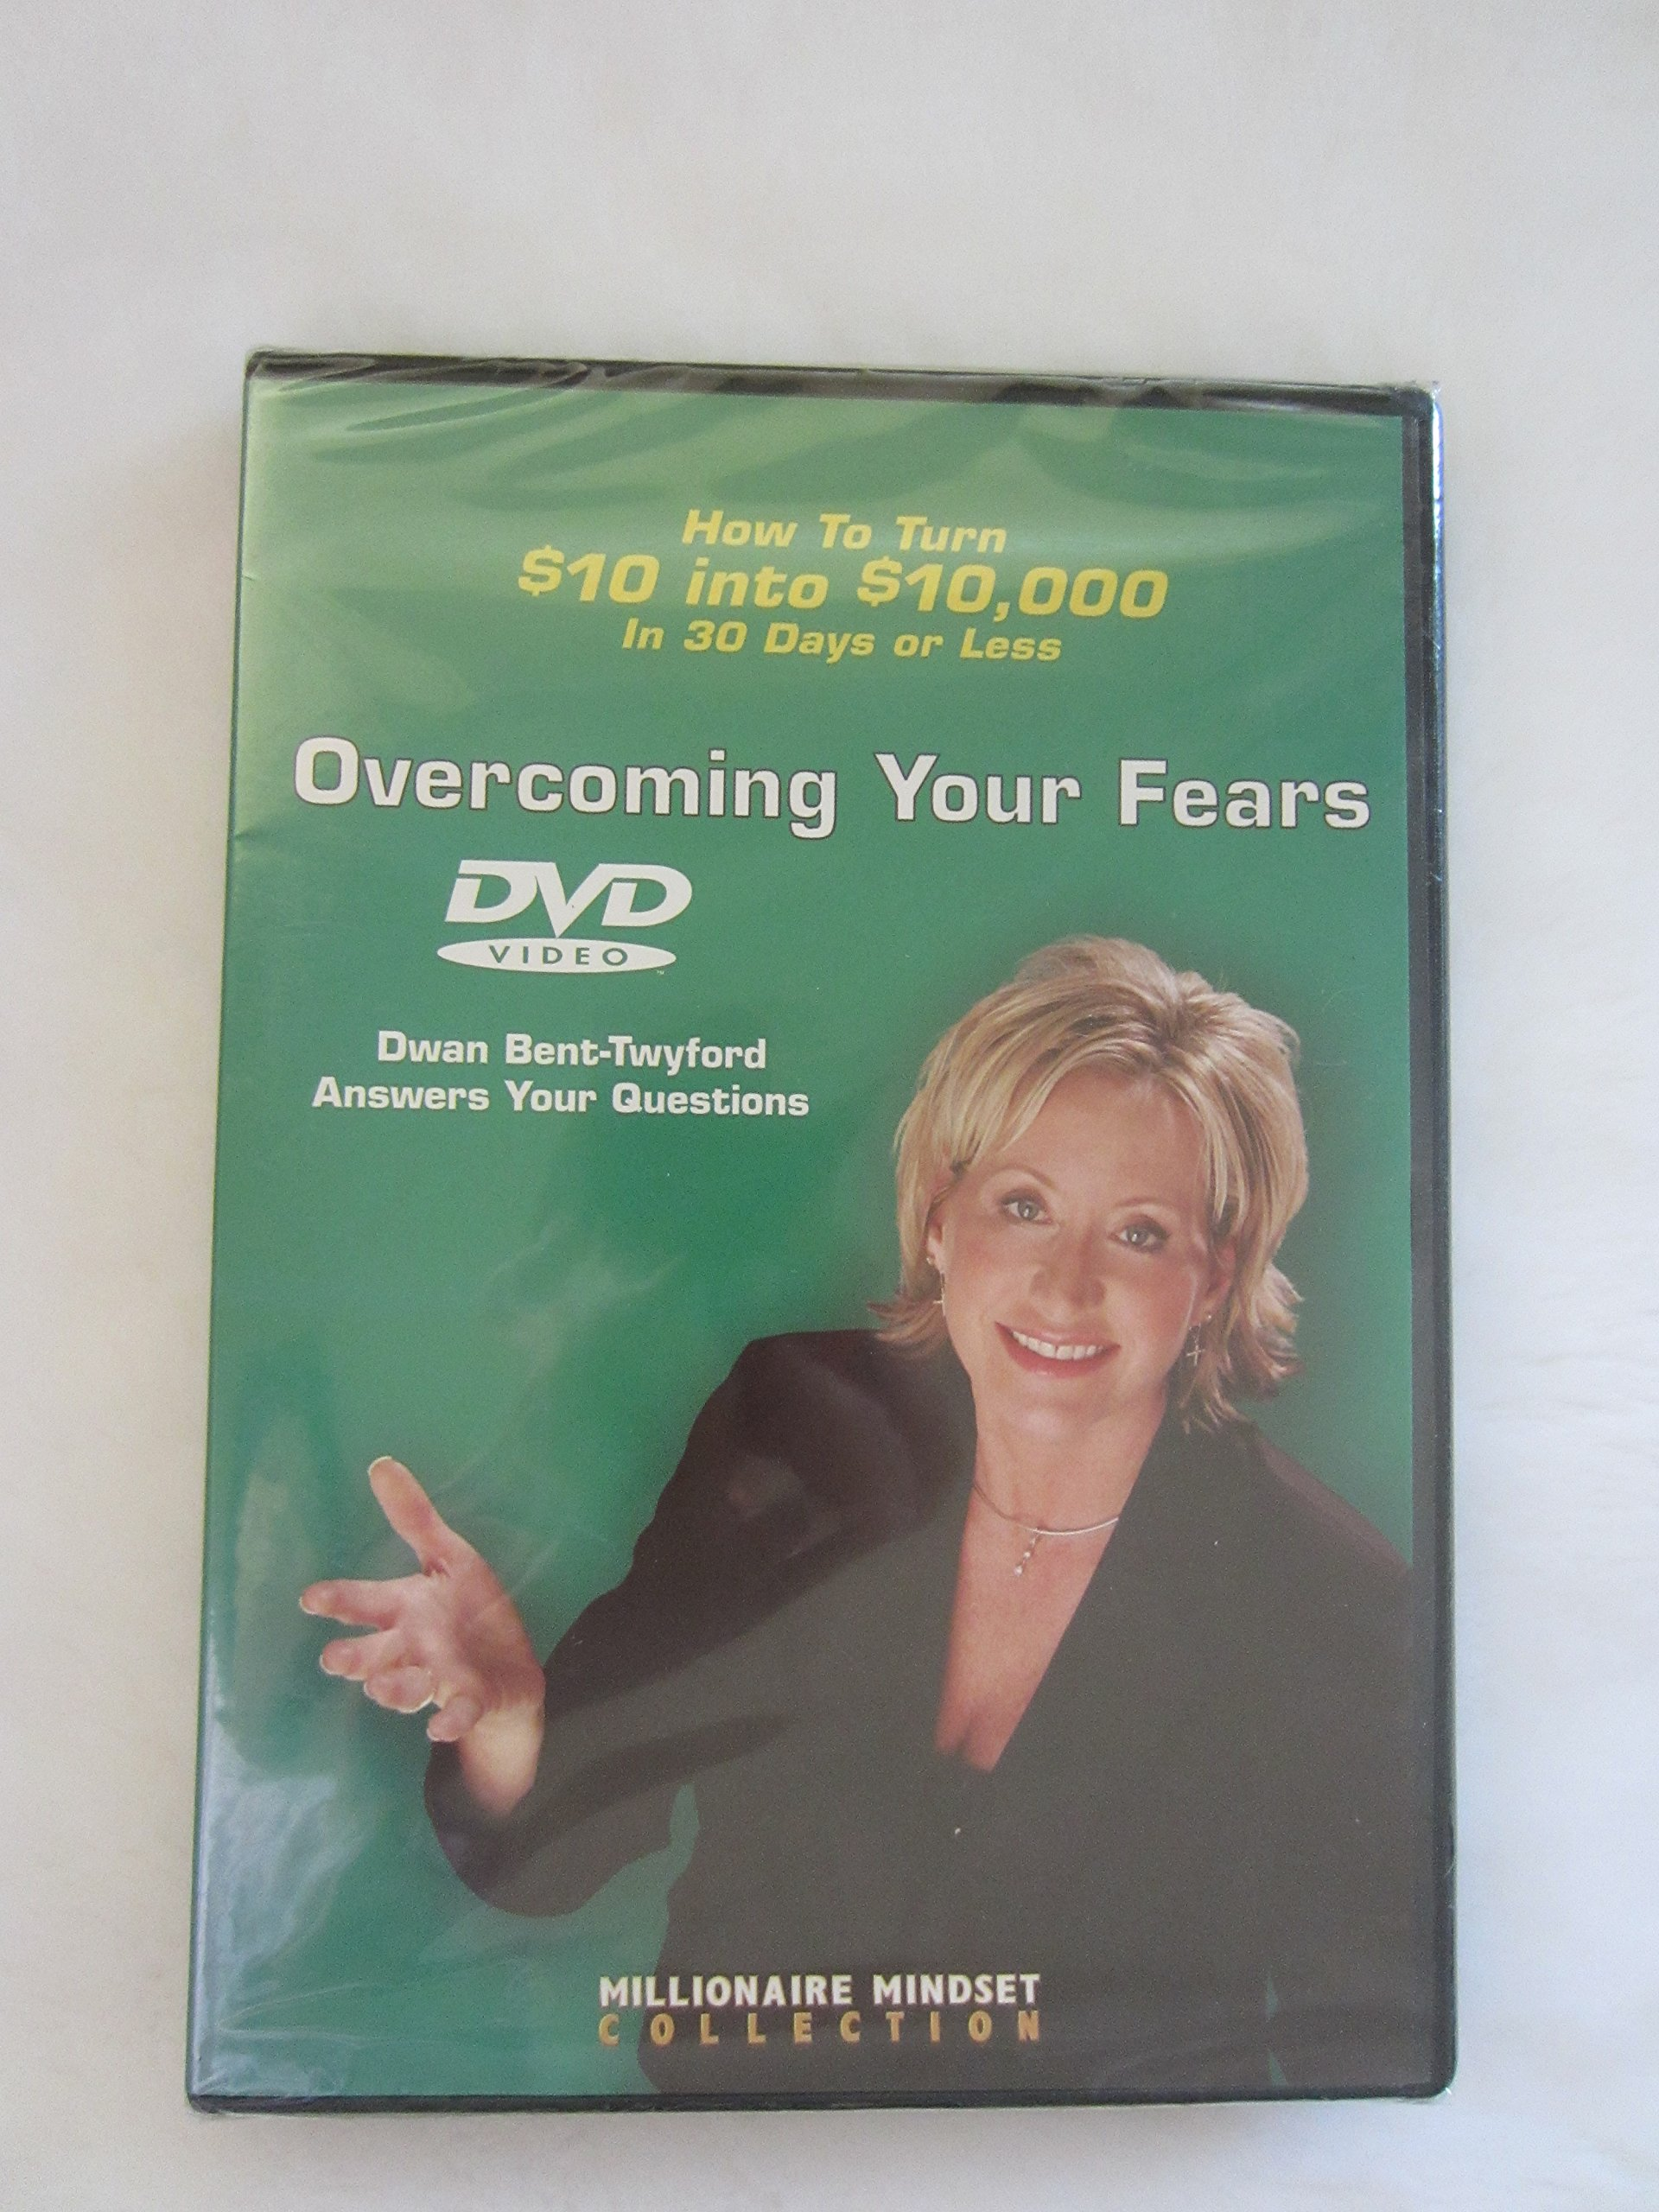 Millionaire Mindset Collection / DVD / How To Turn $10 into $10,000 in 30 days or less / Overcoming your Fears / 1 only DVD (Millionaire Mindset Collection, Dwan Bent-Twyford answers your questions) pdf epub